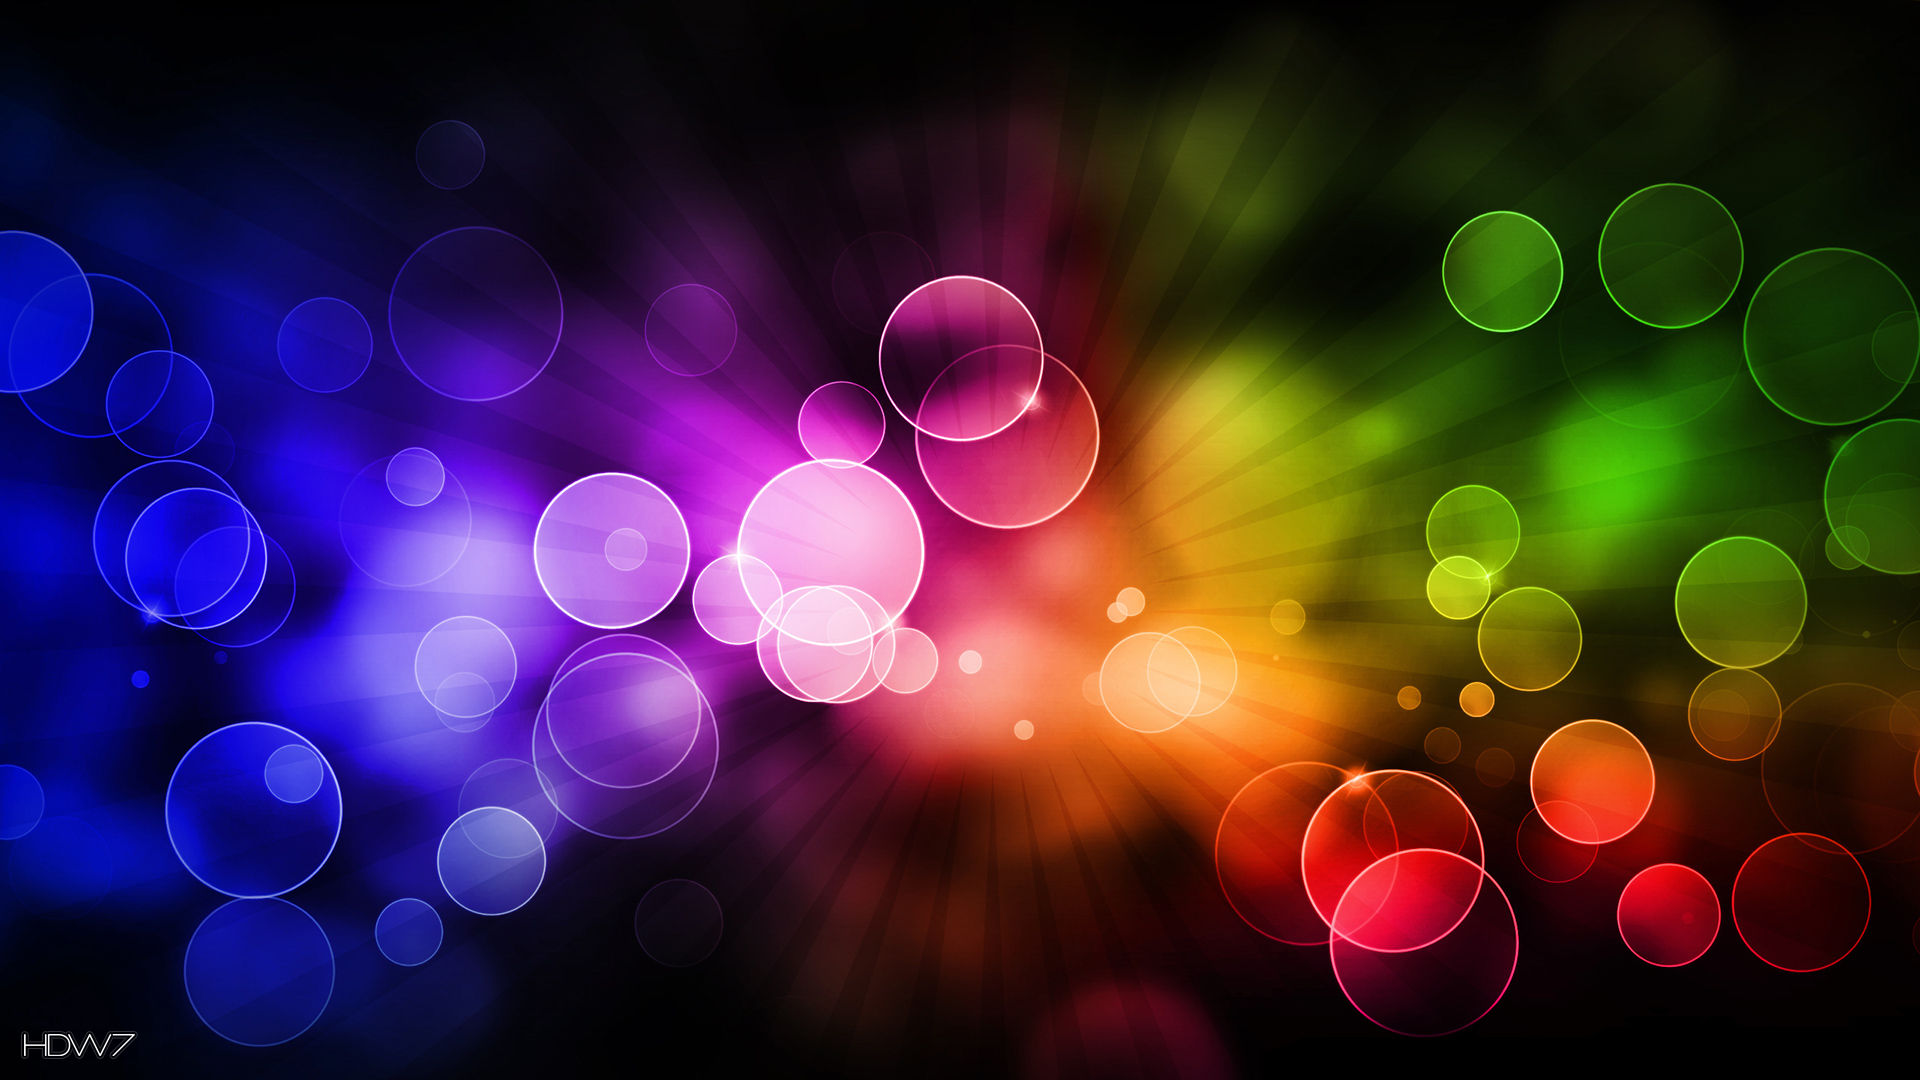 Wallpaper Background Free bokeh abstract background free